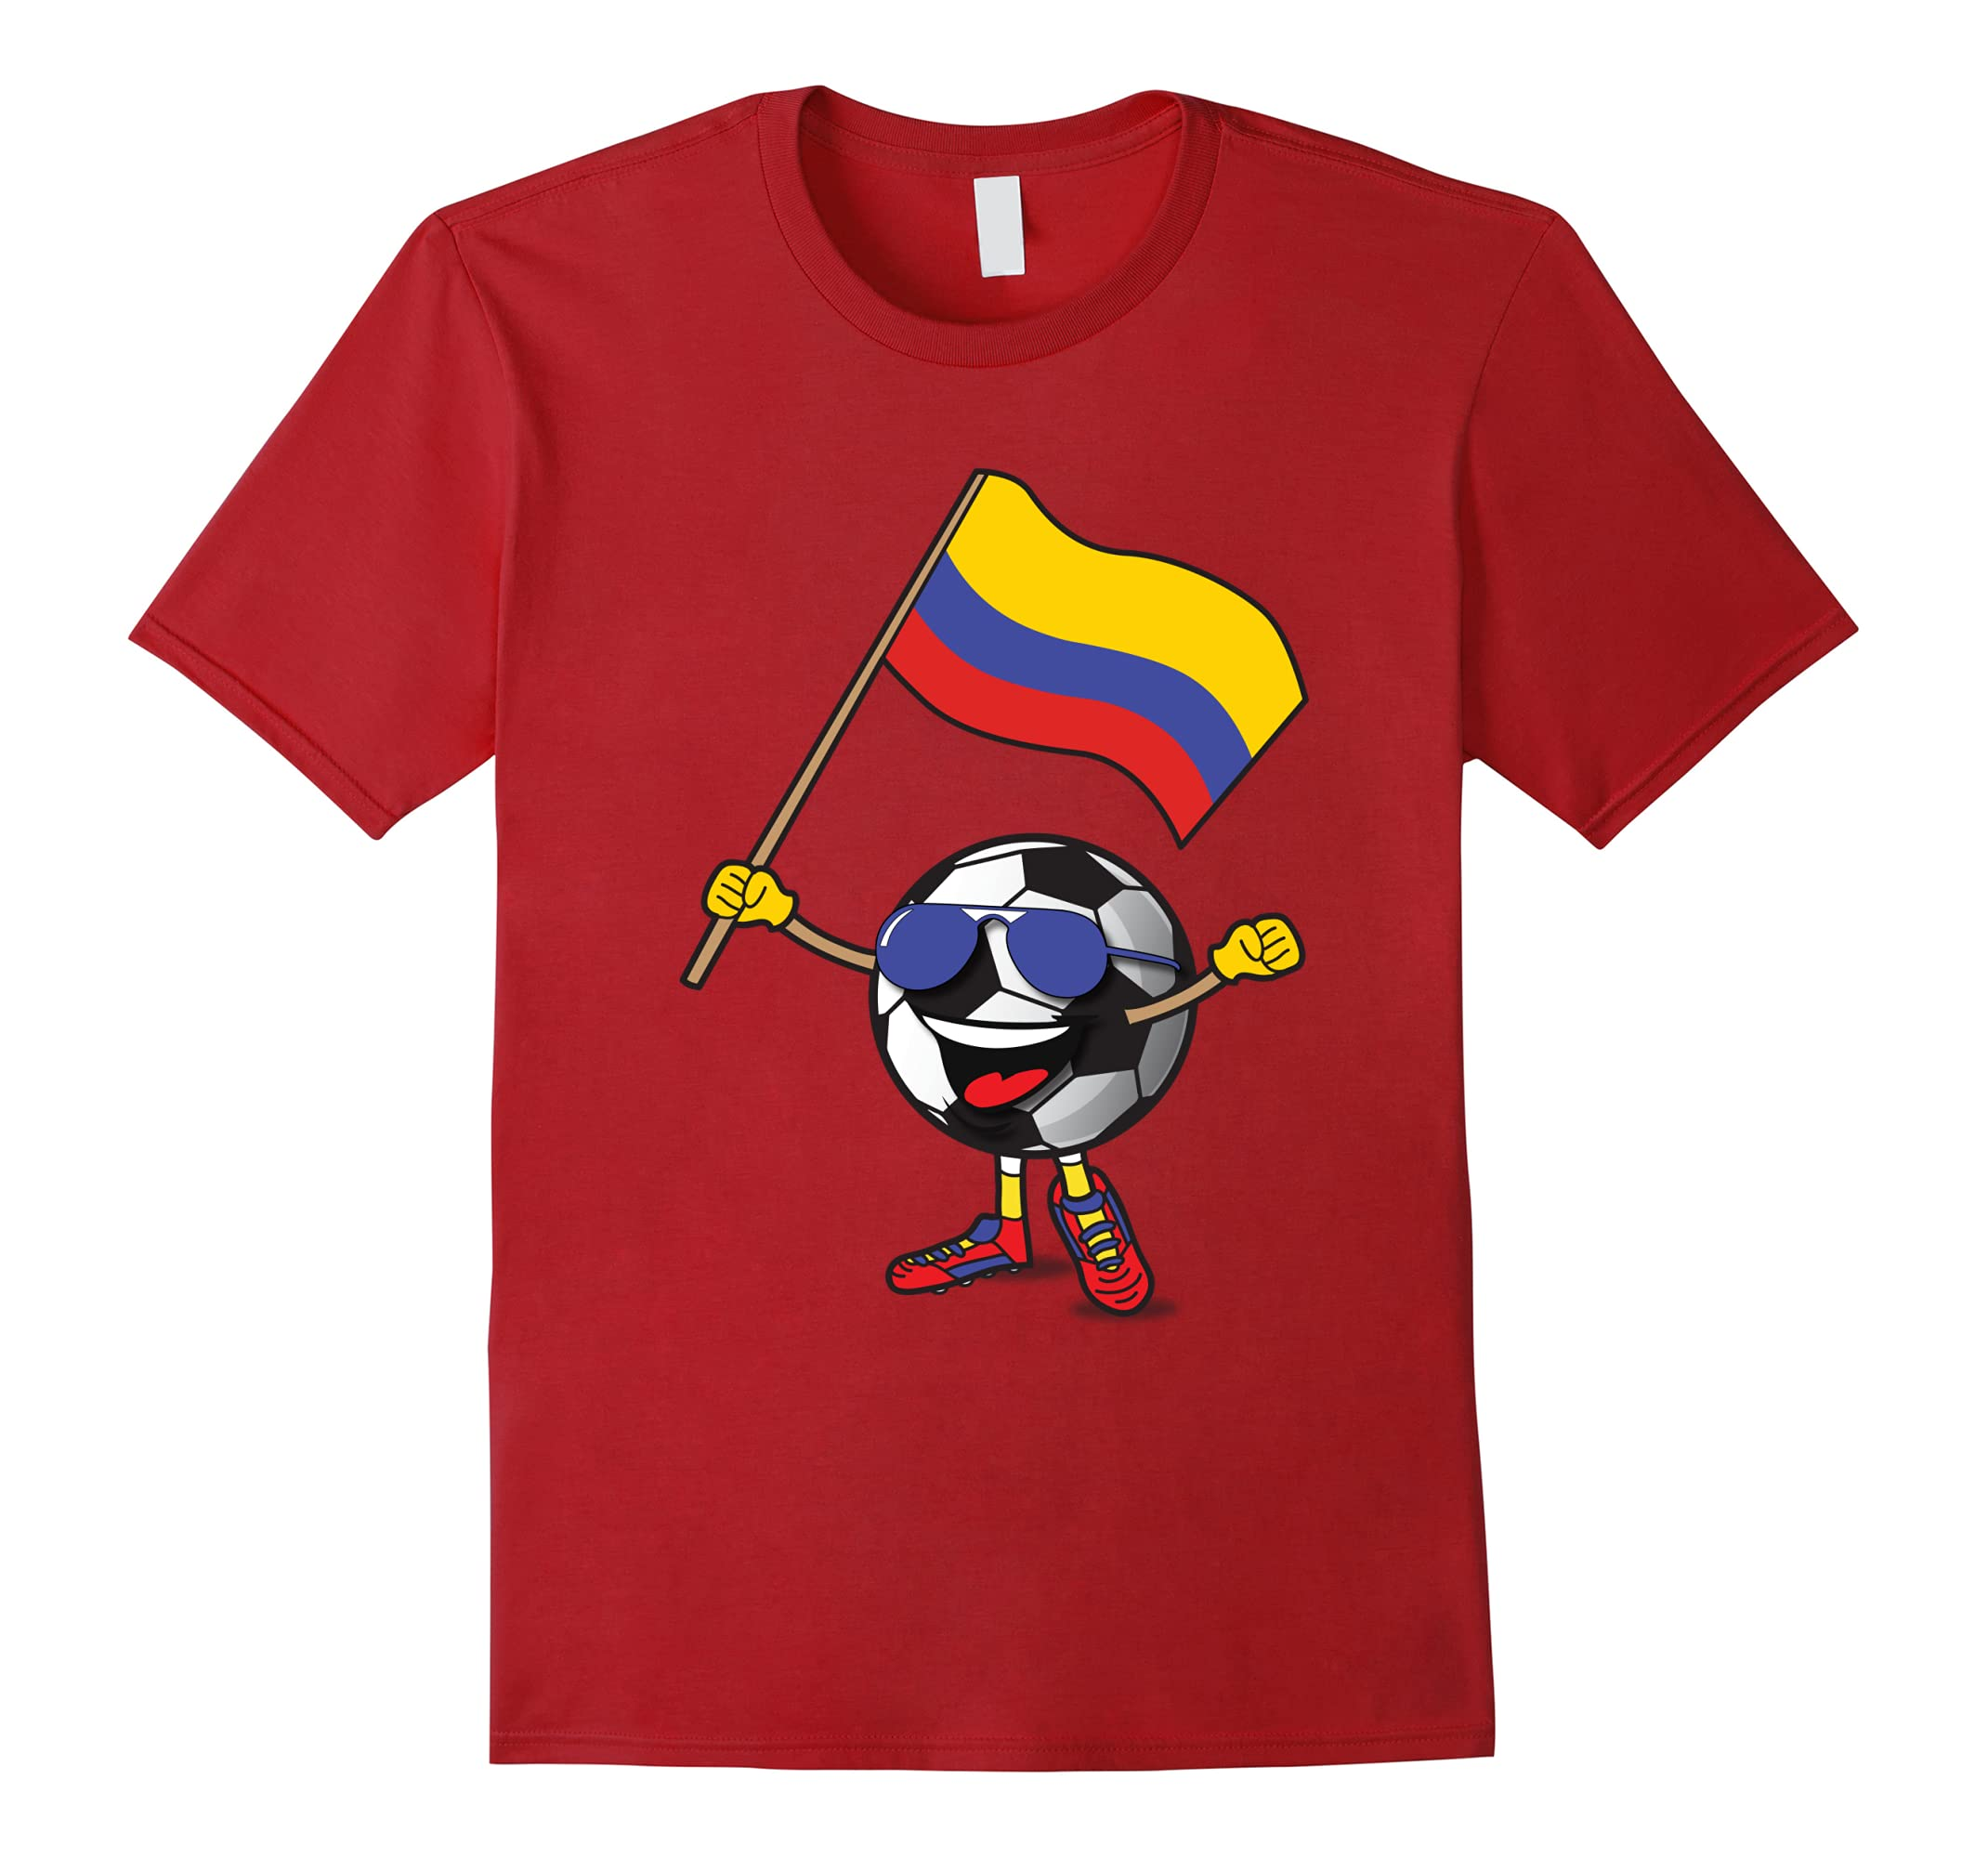 Colombia National Team Soccer Ball Fan Shirt For Boys Girls-RT